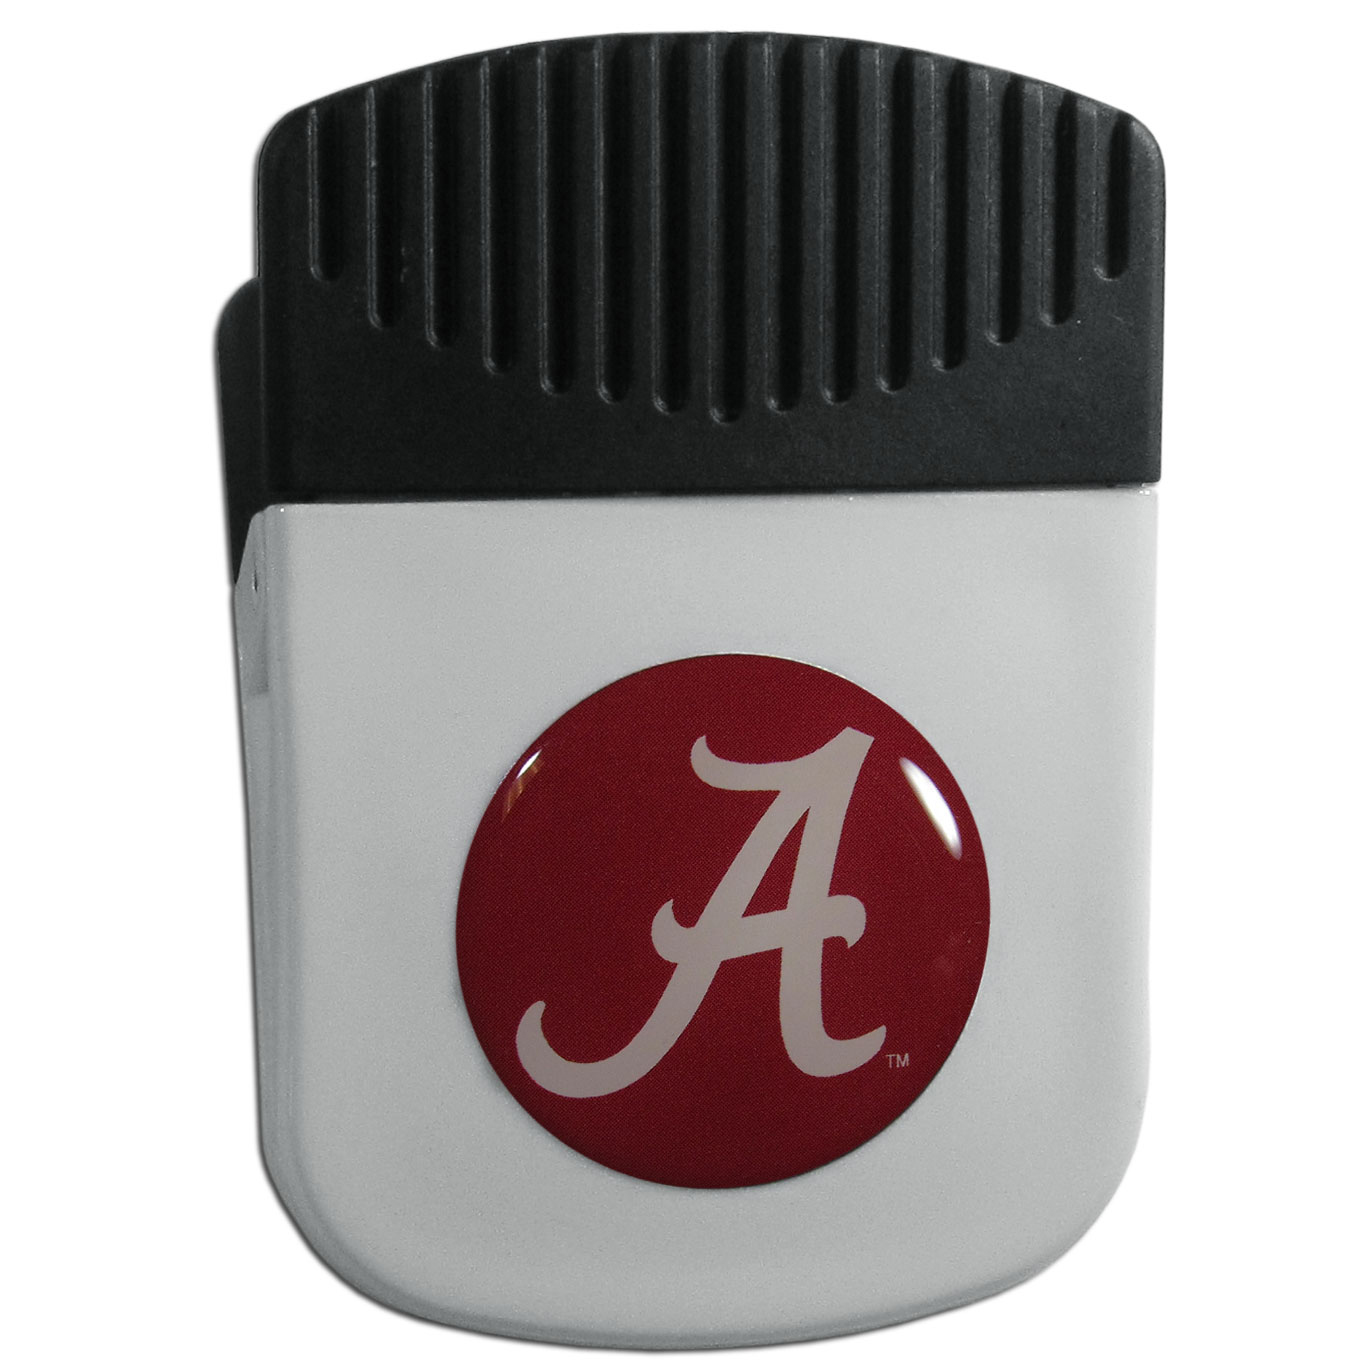 Alabama Crimson Tide Chip Clip Magnet - Use this attractive clip magnet to hold memos, photos or appointment cards on the fridge or take it down keep use it to clip bags shut. The magnet features a domed Alabama Crimson Tide logo.